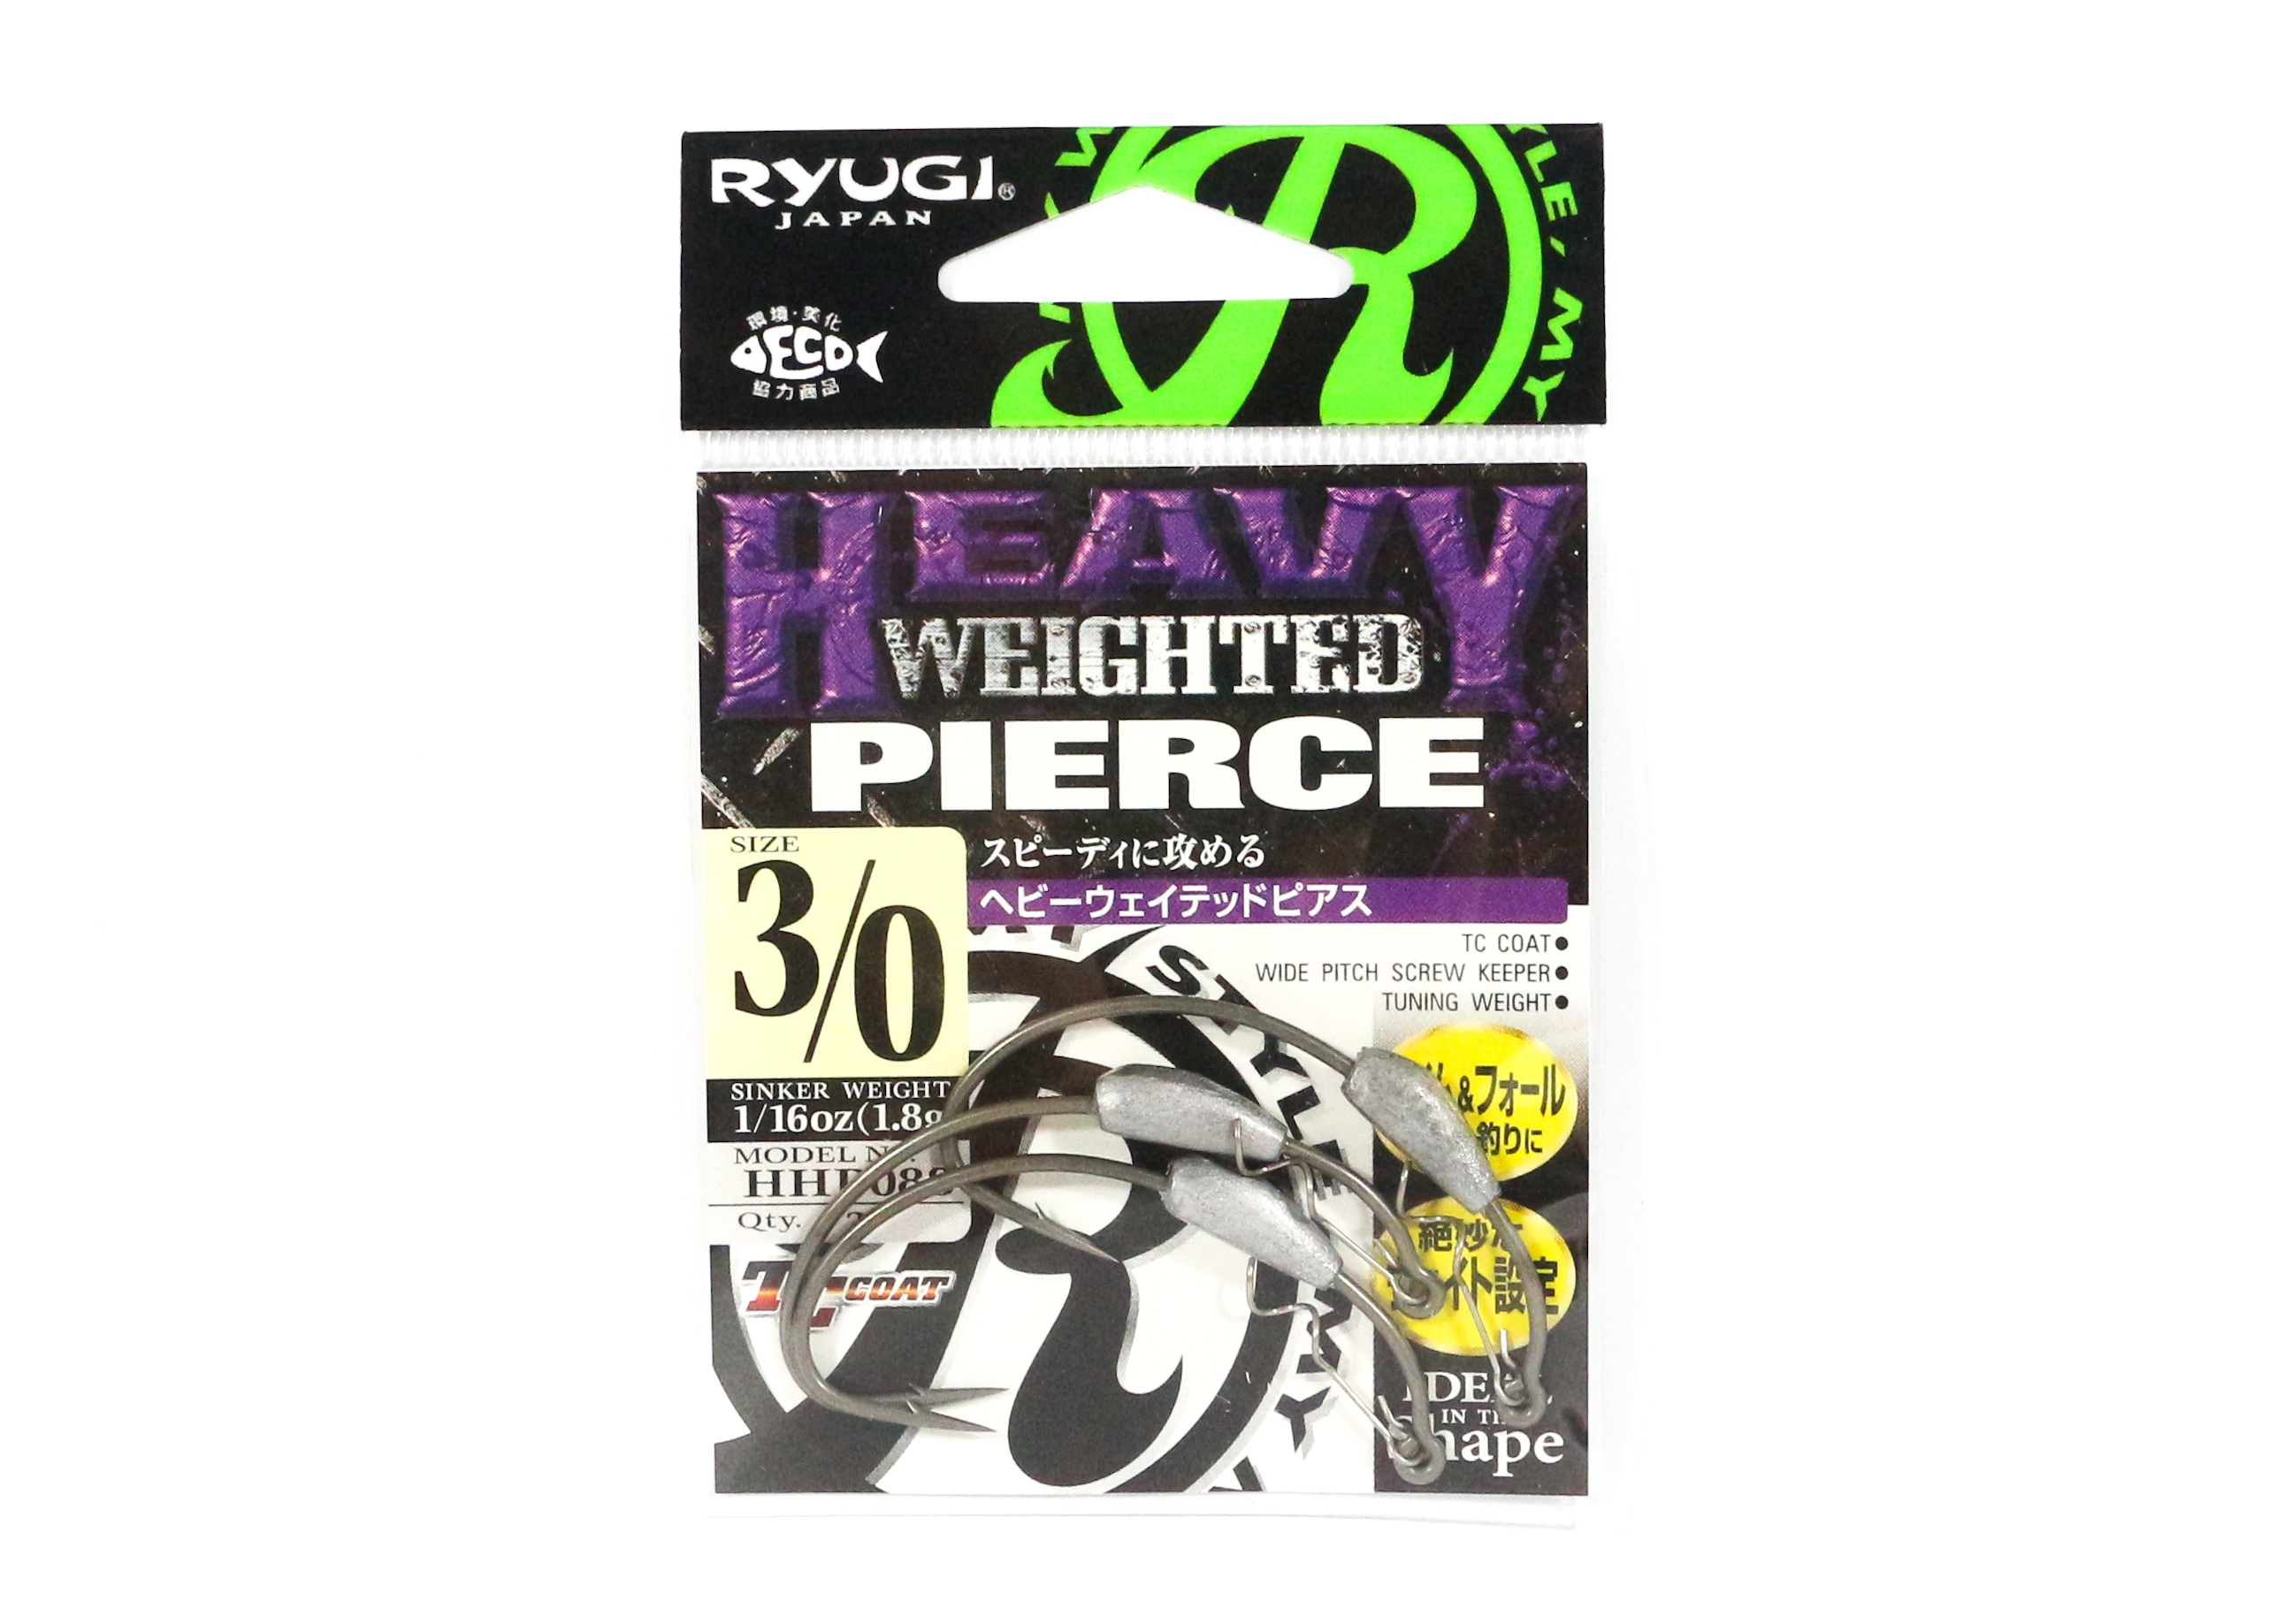 Ryugi HHP088 Heavy Weighted Pierce Hook Size 3/0 (4940)